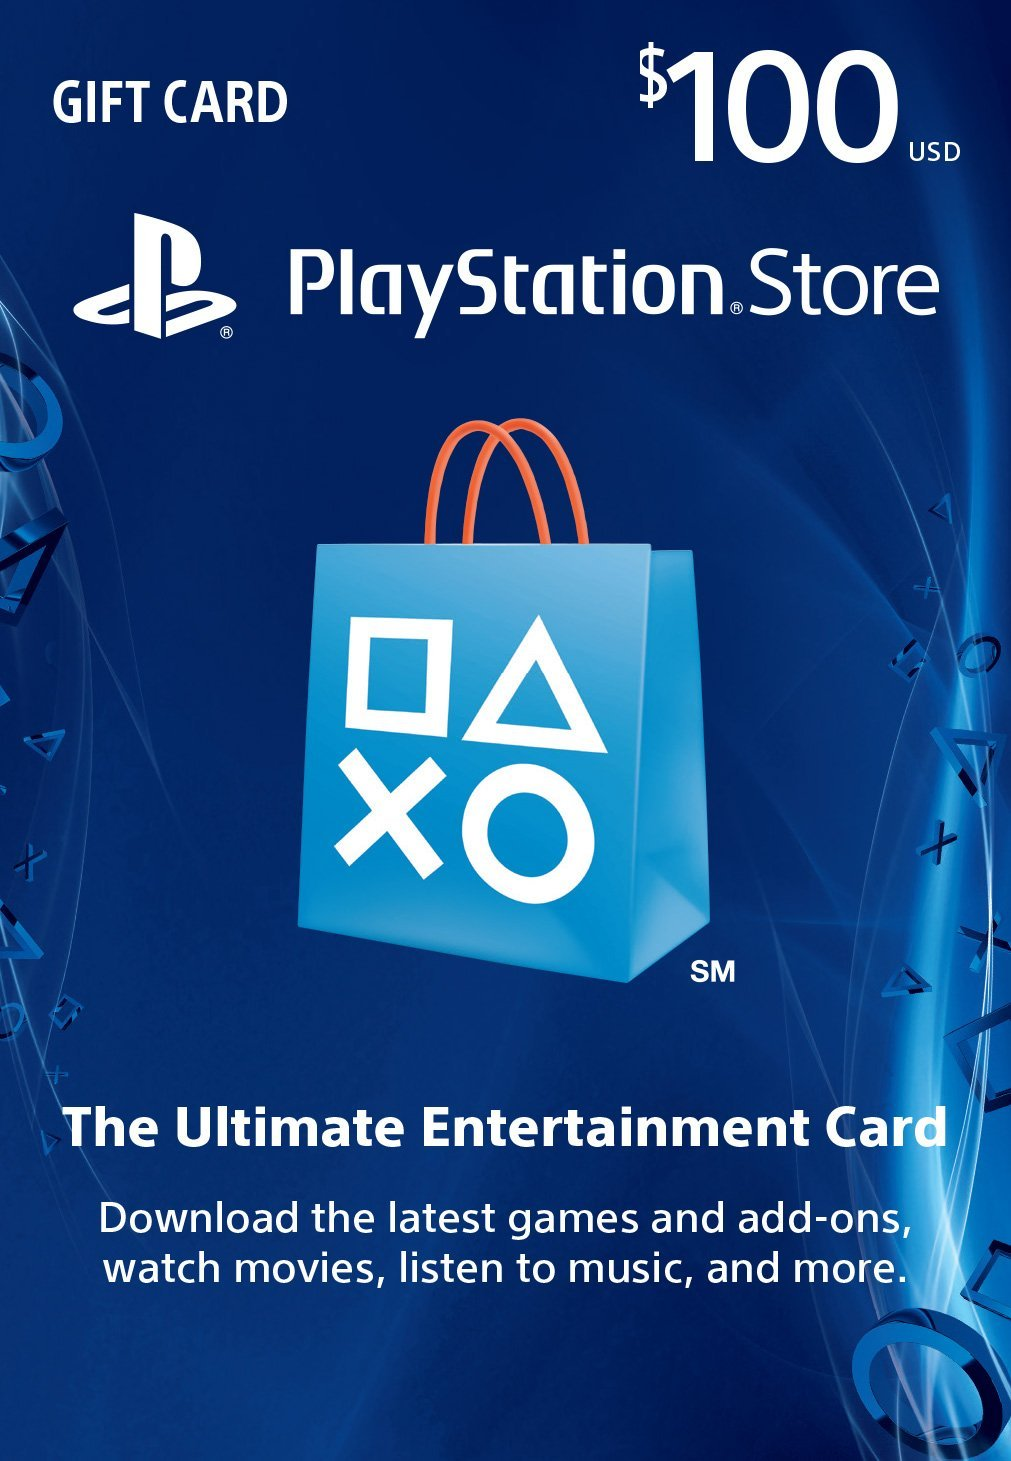 PSN Gift Card Code USA $ 100 for PS4, PS3, PS Vita